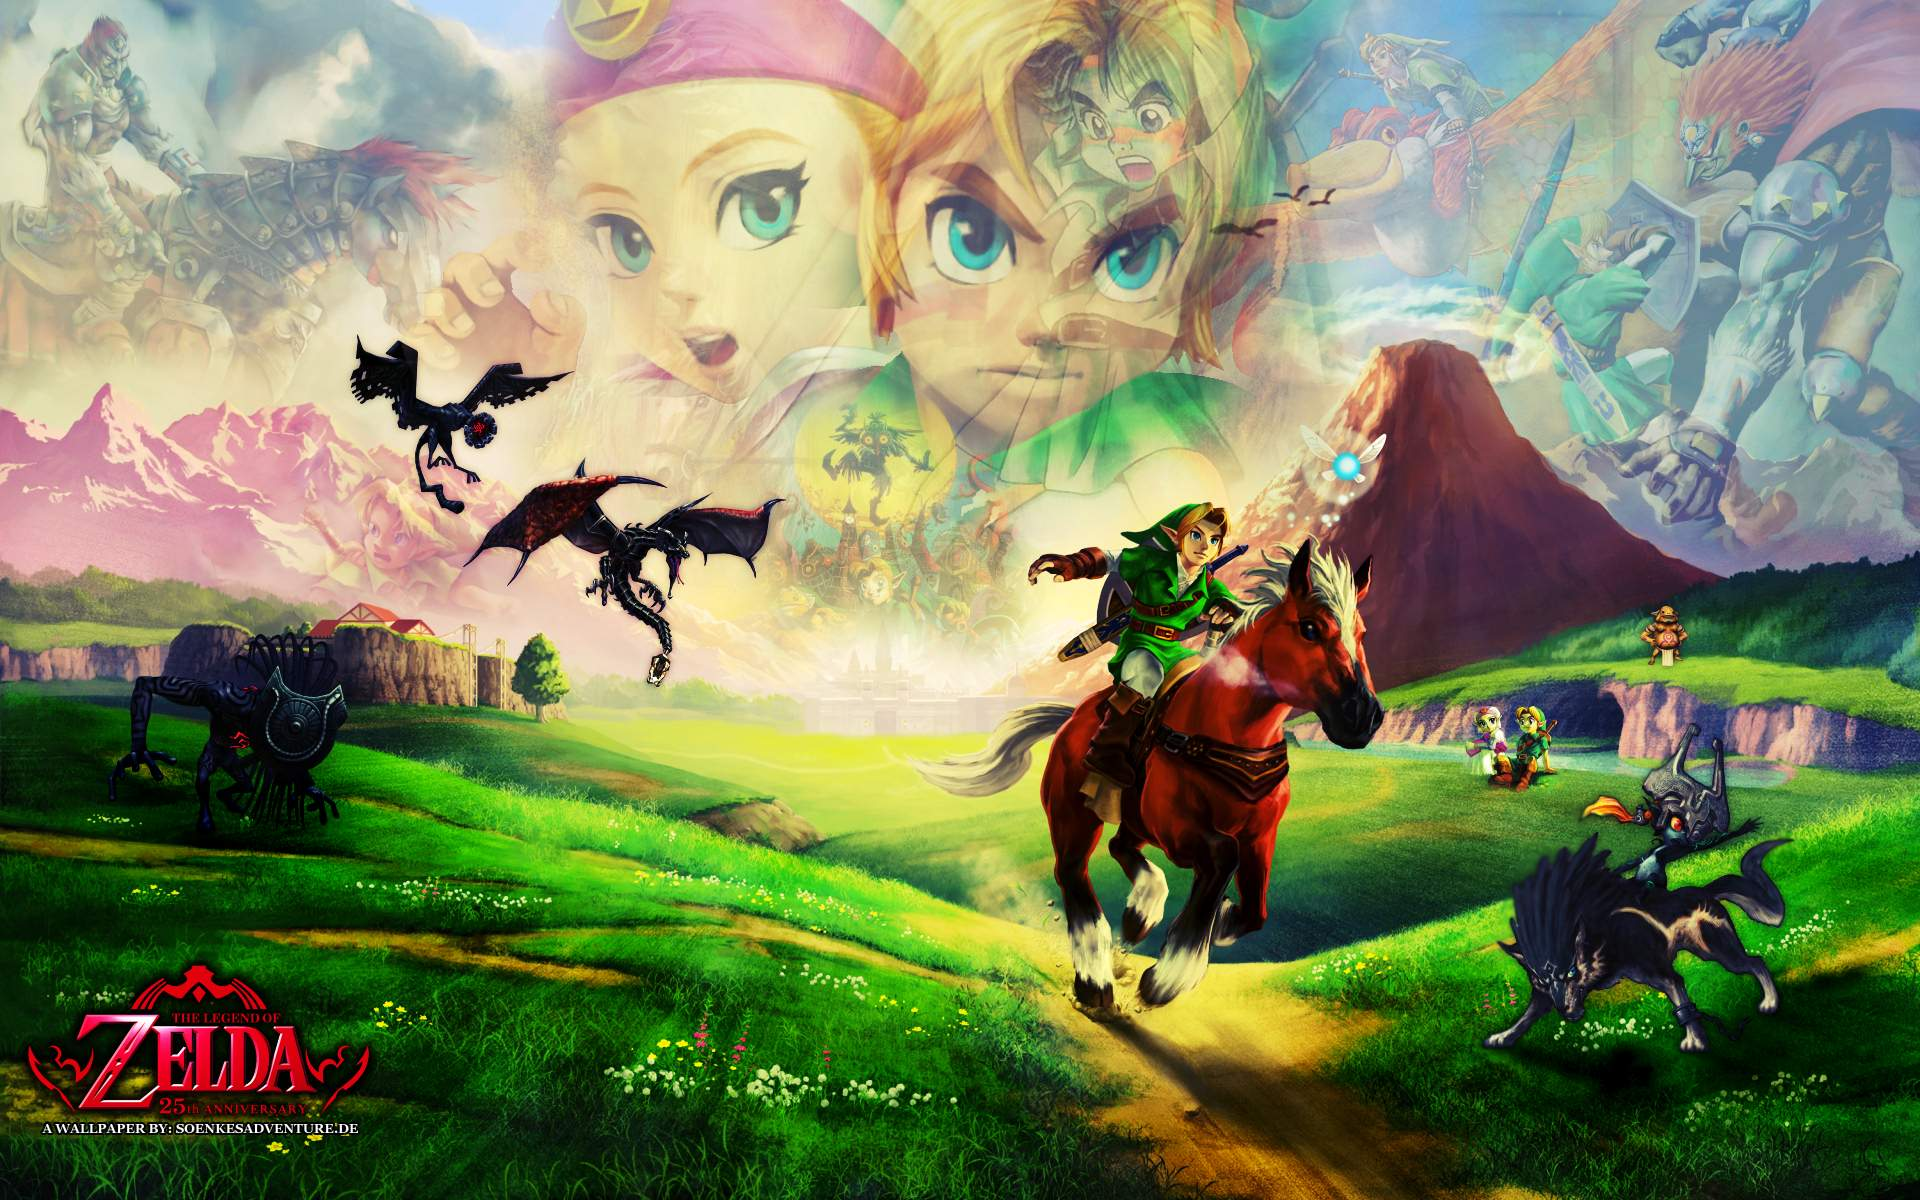 hd zelda wallpapers - photo #37